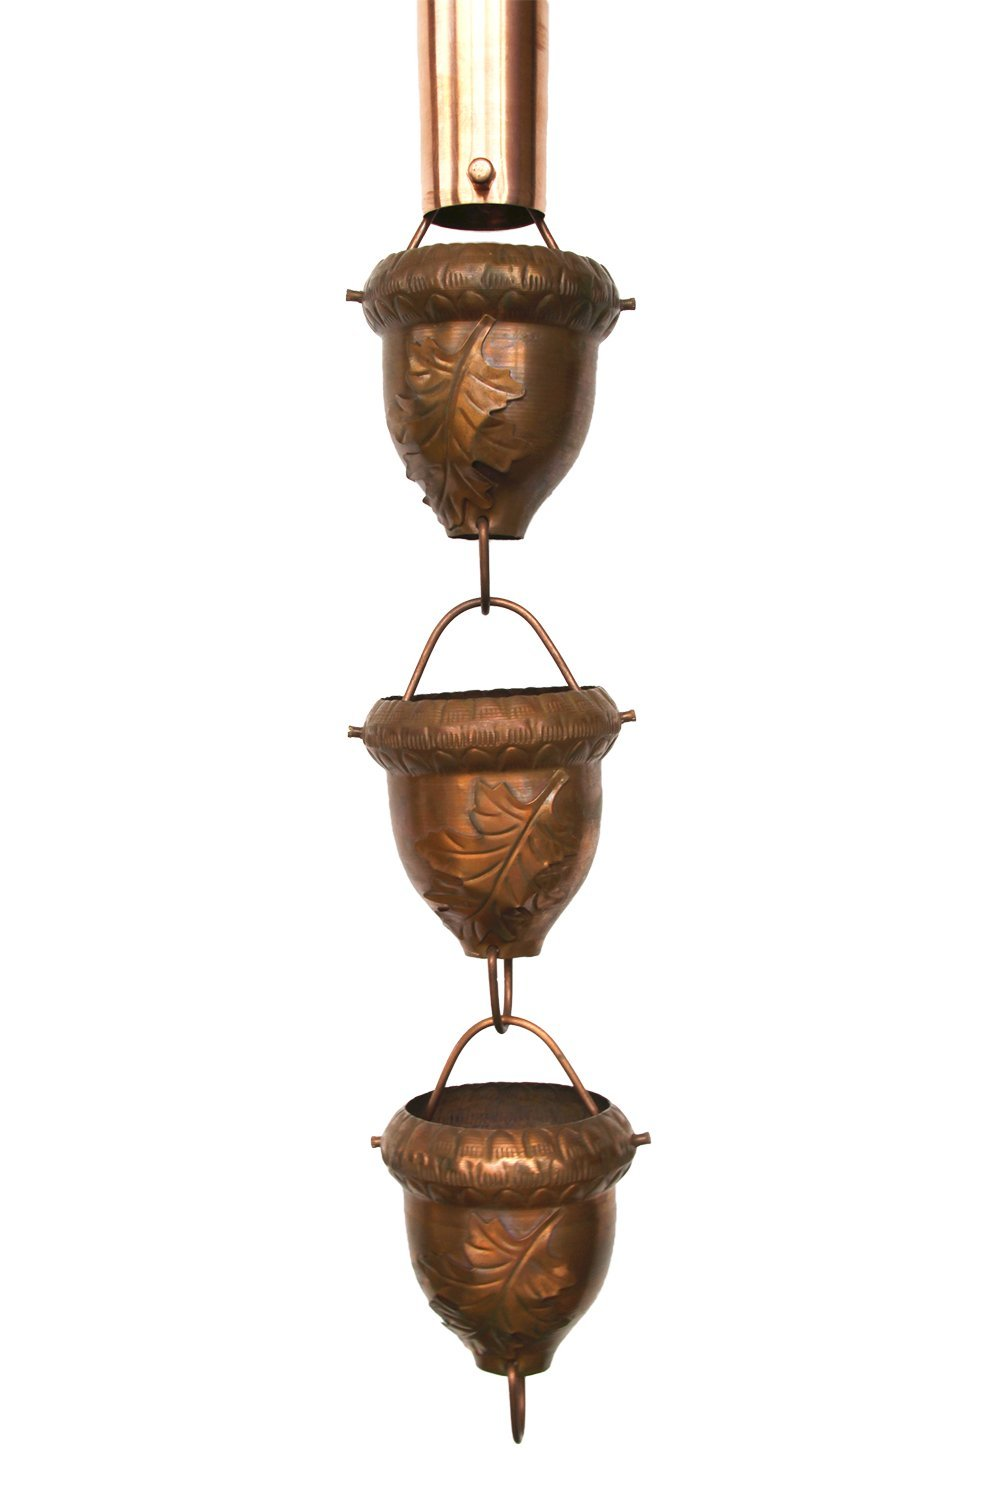 Autumn Oak Copper Rain Chain with Installation Kit (16 Foot) by Nutshell Stores